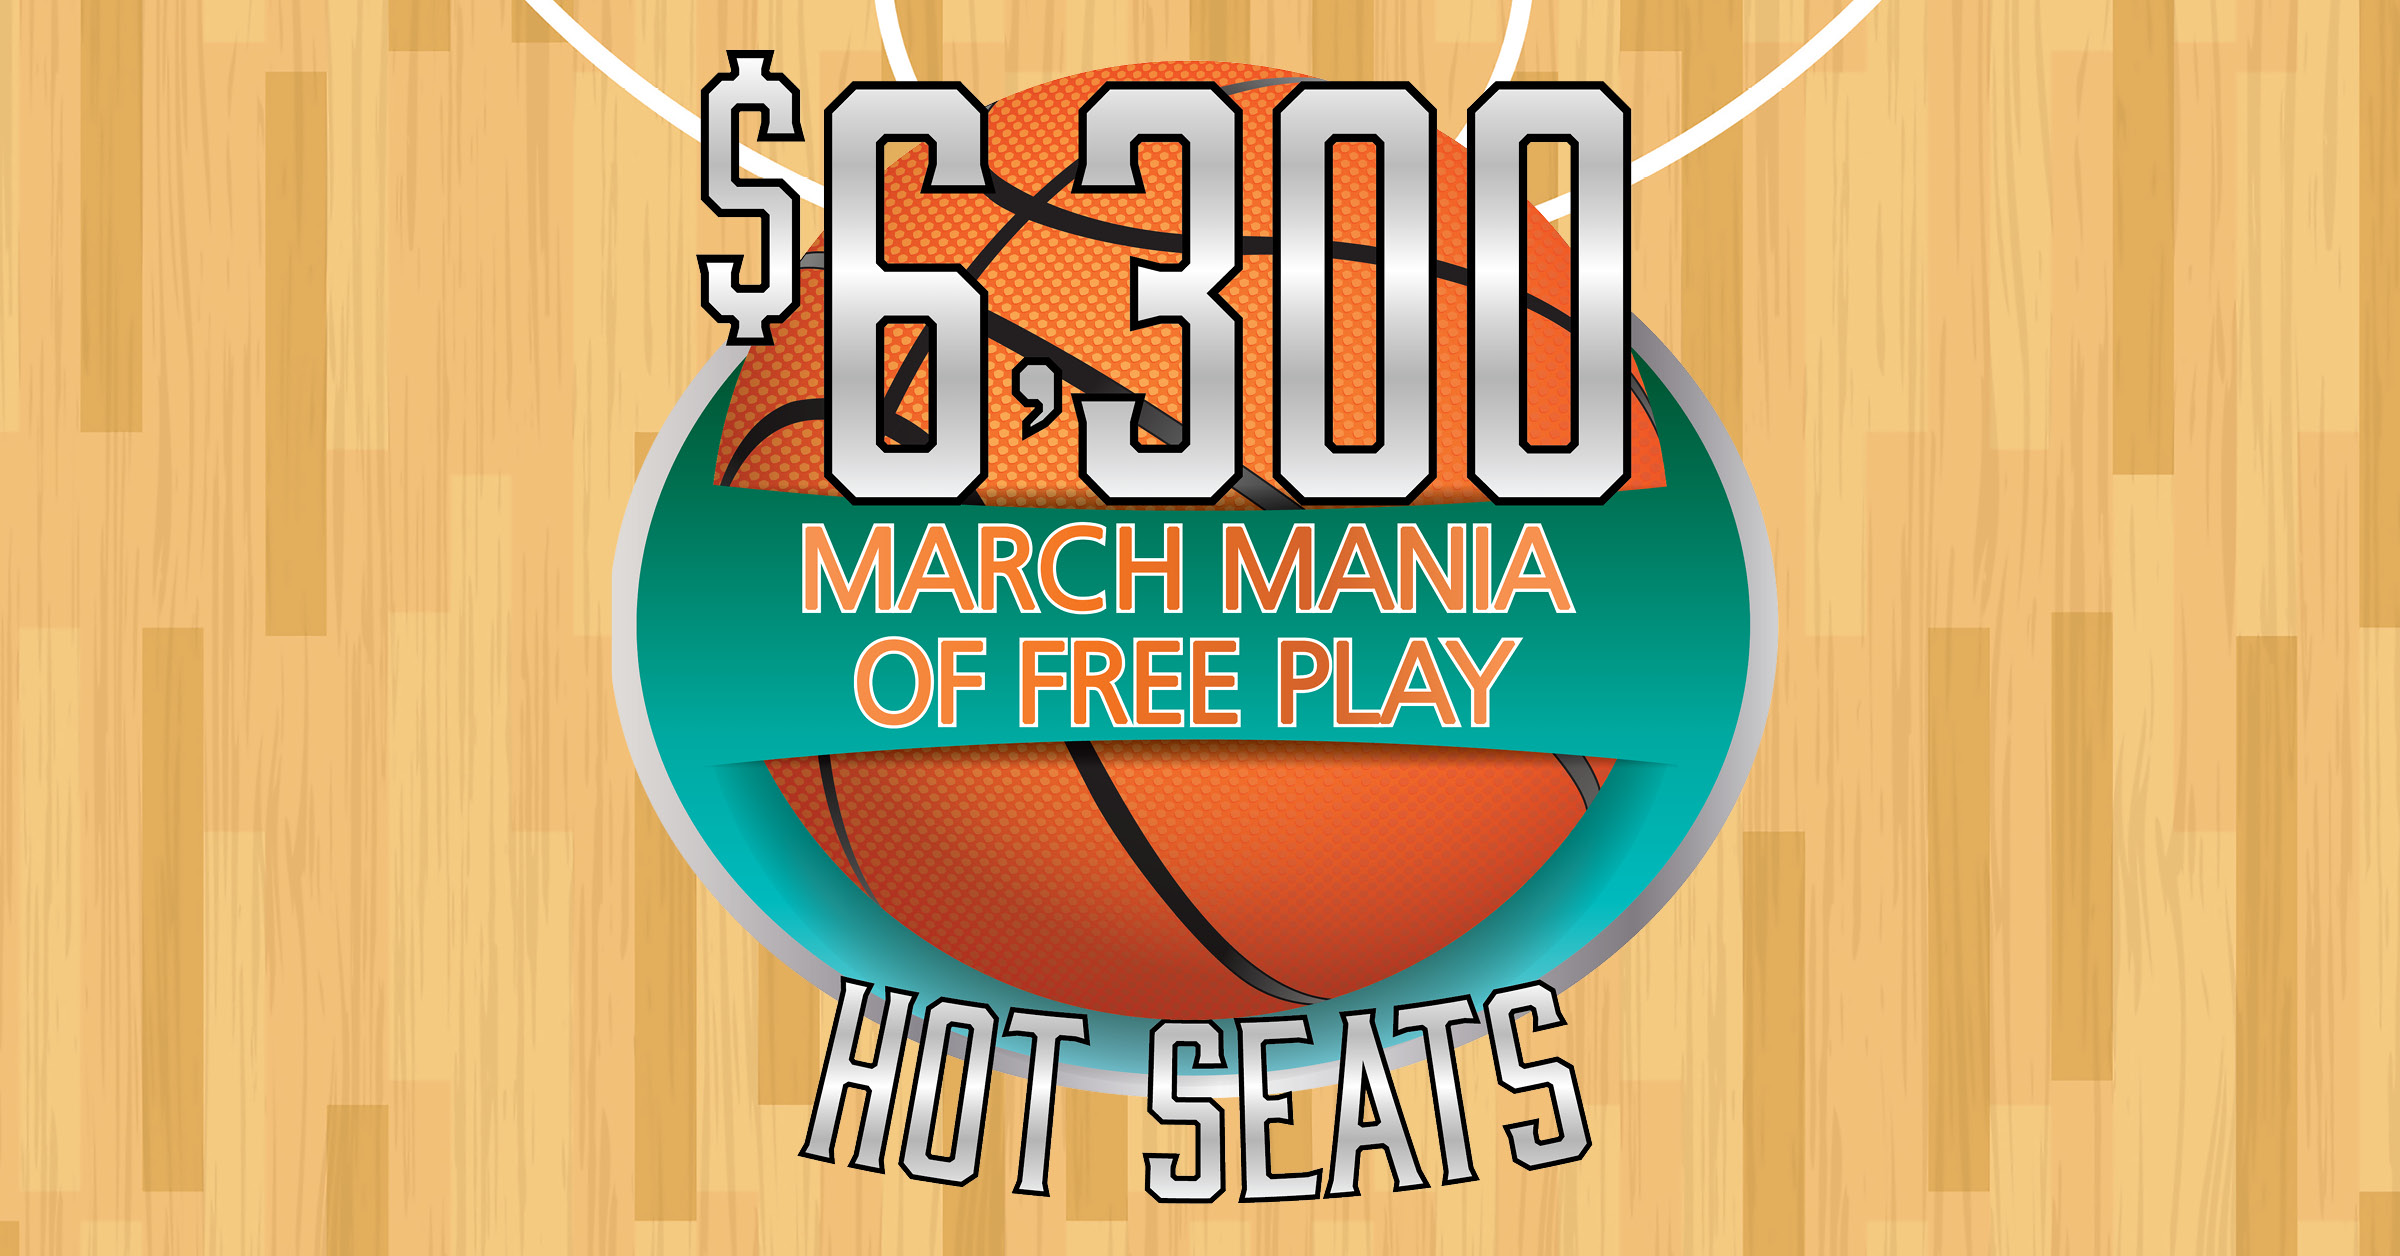 $6,300 March Mania of Free Play Hot Seats